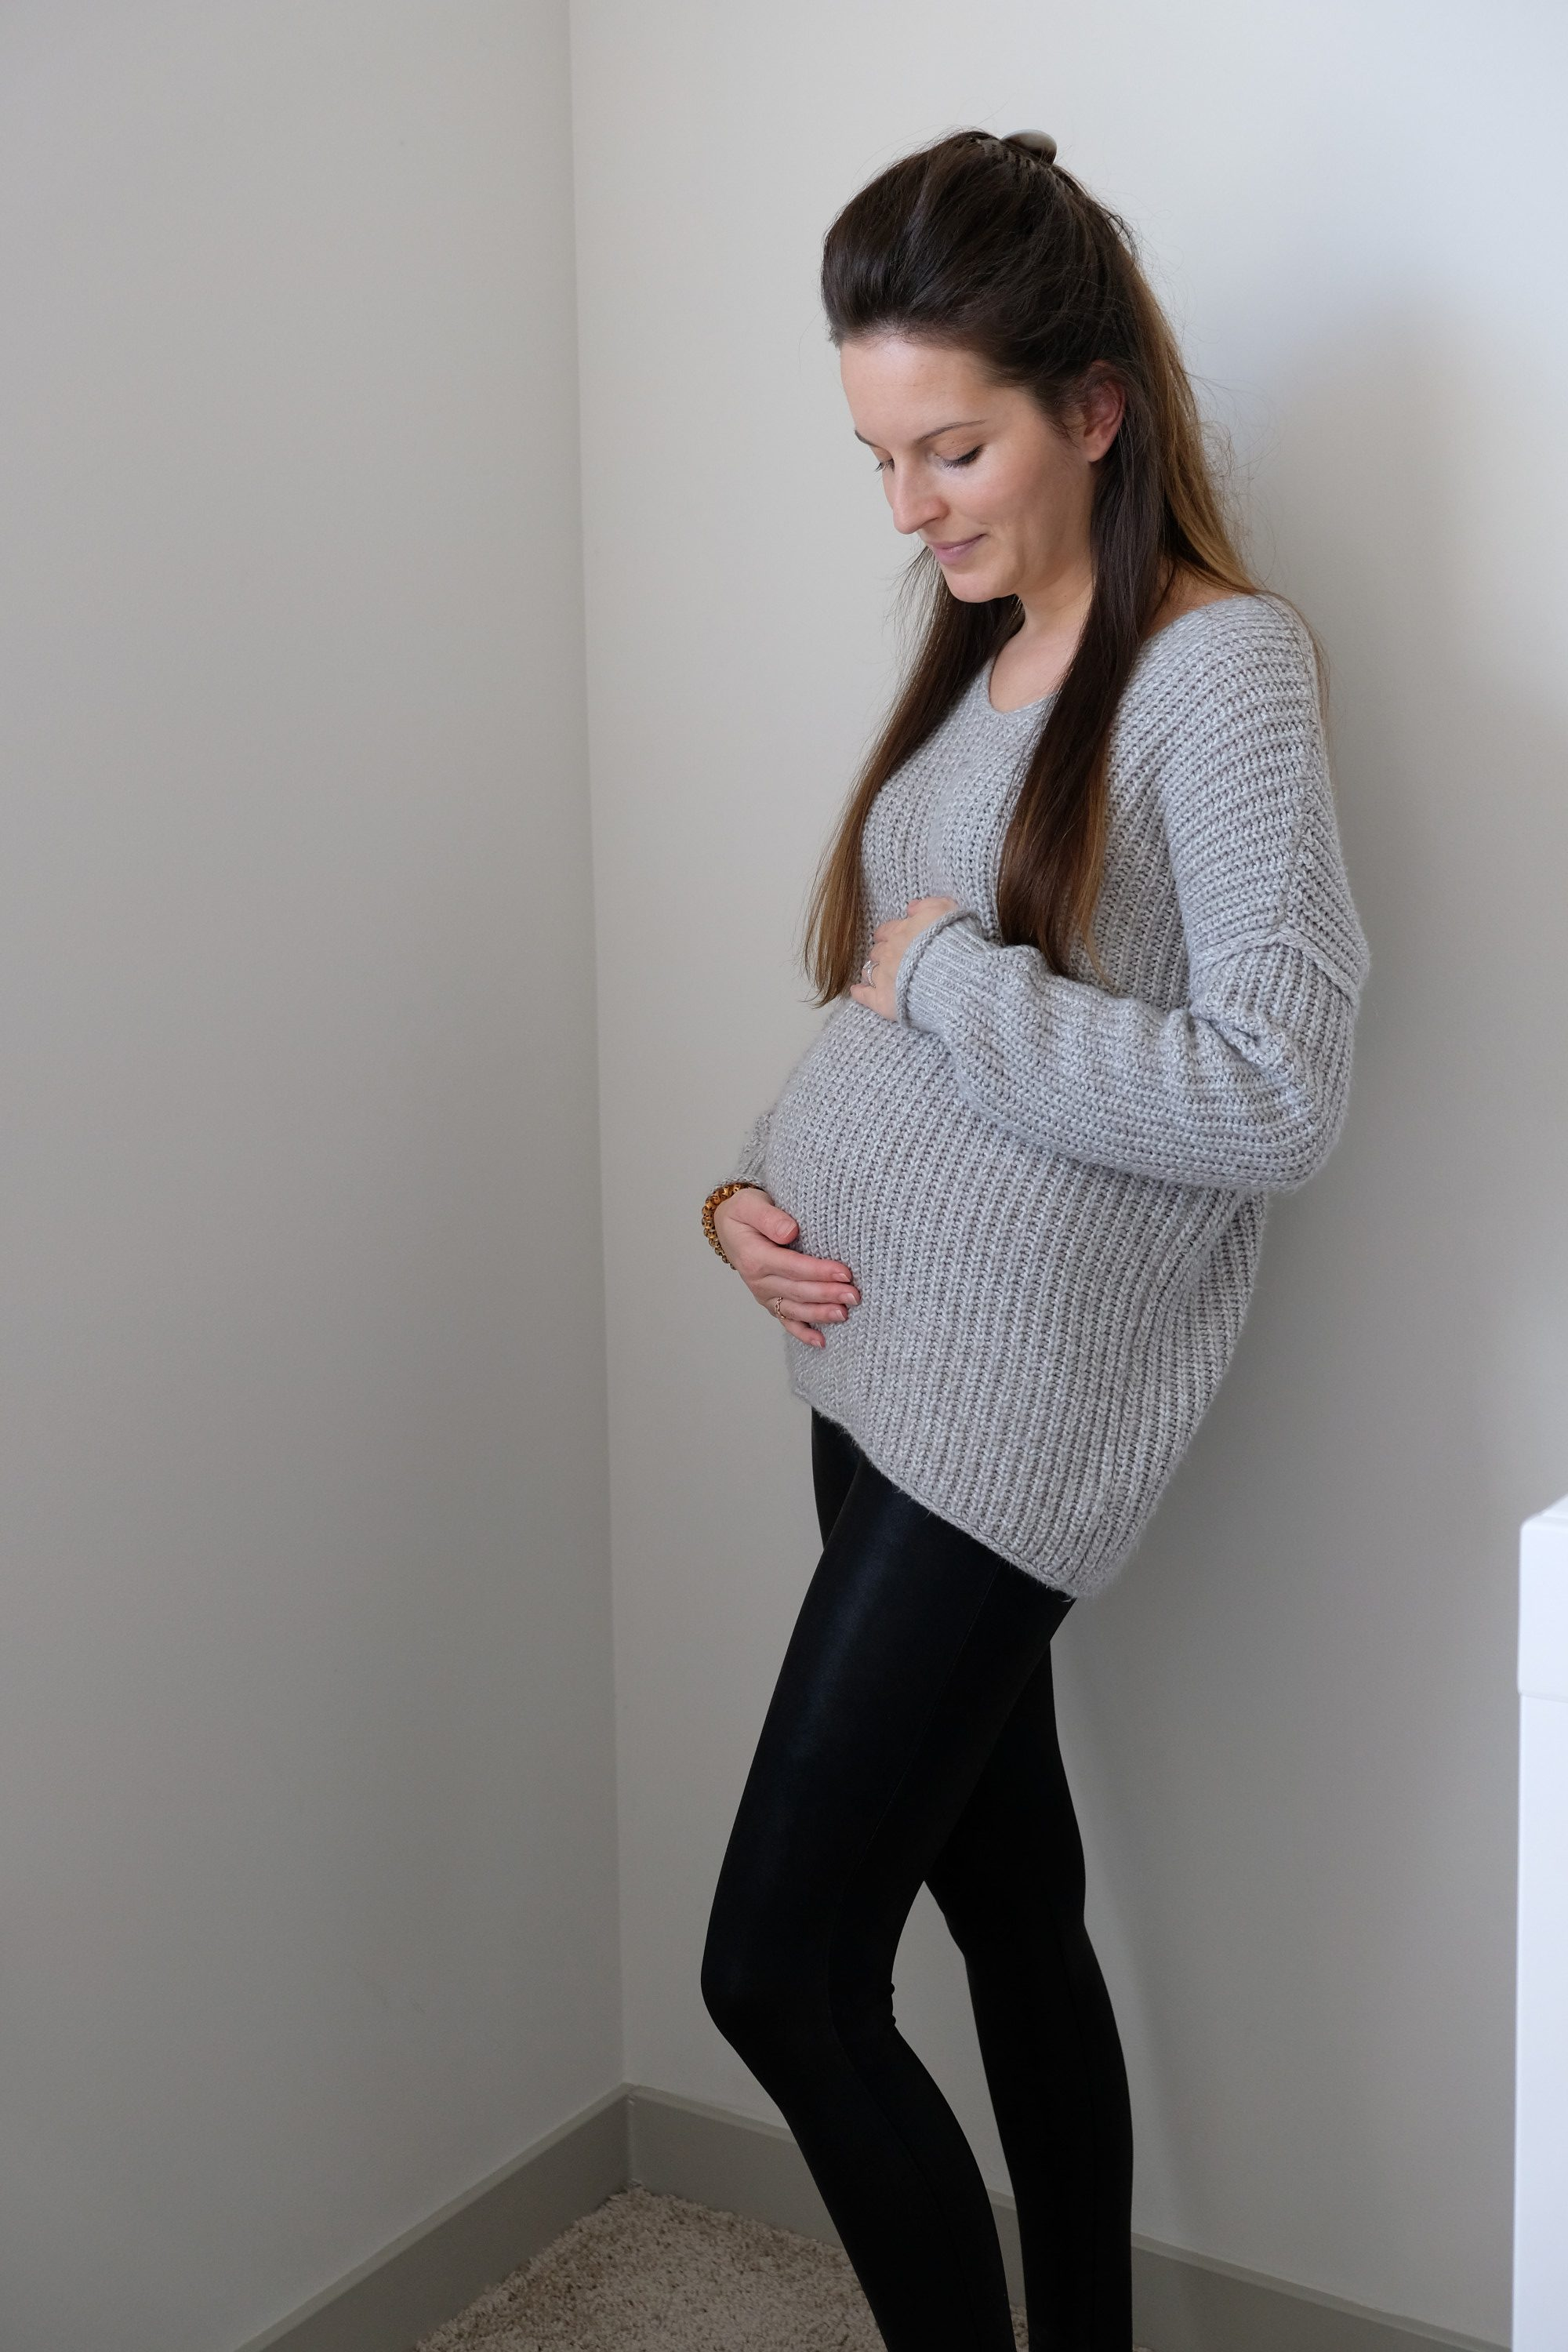 Pregnancy update week 18!